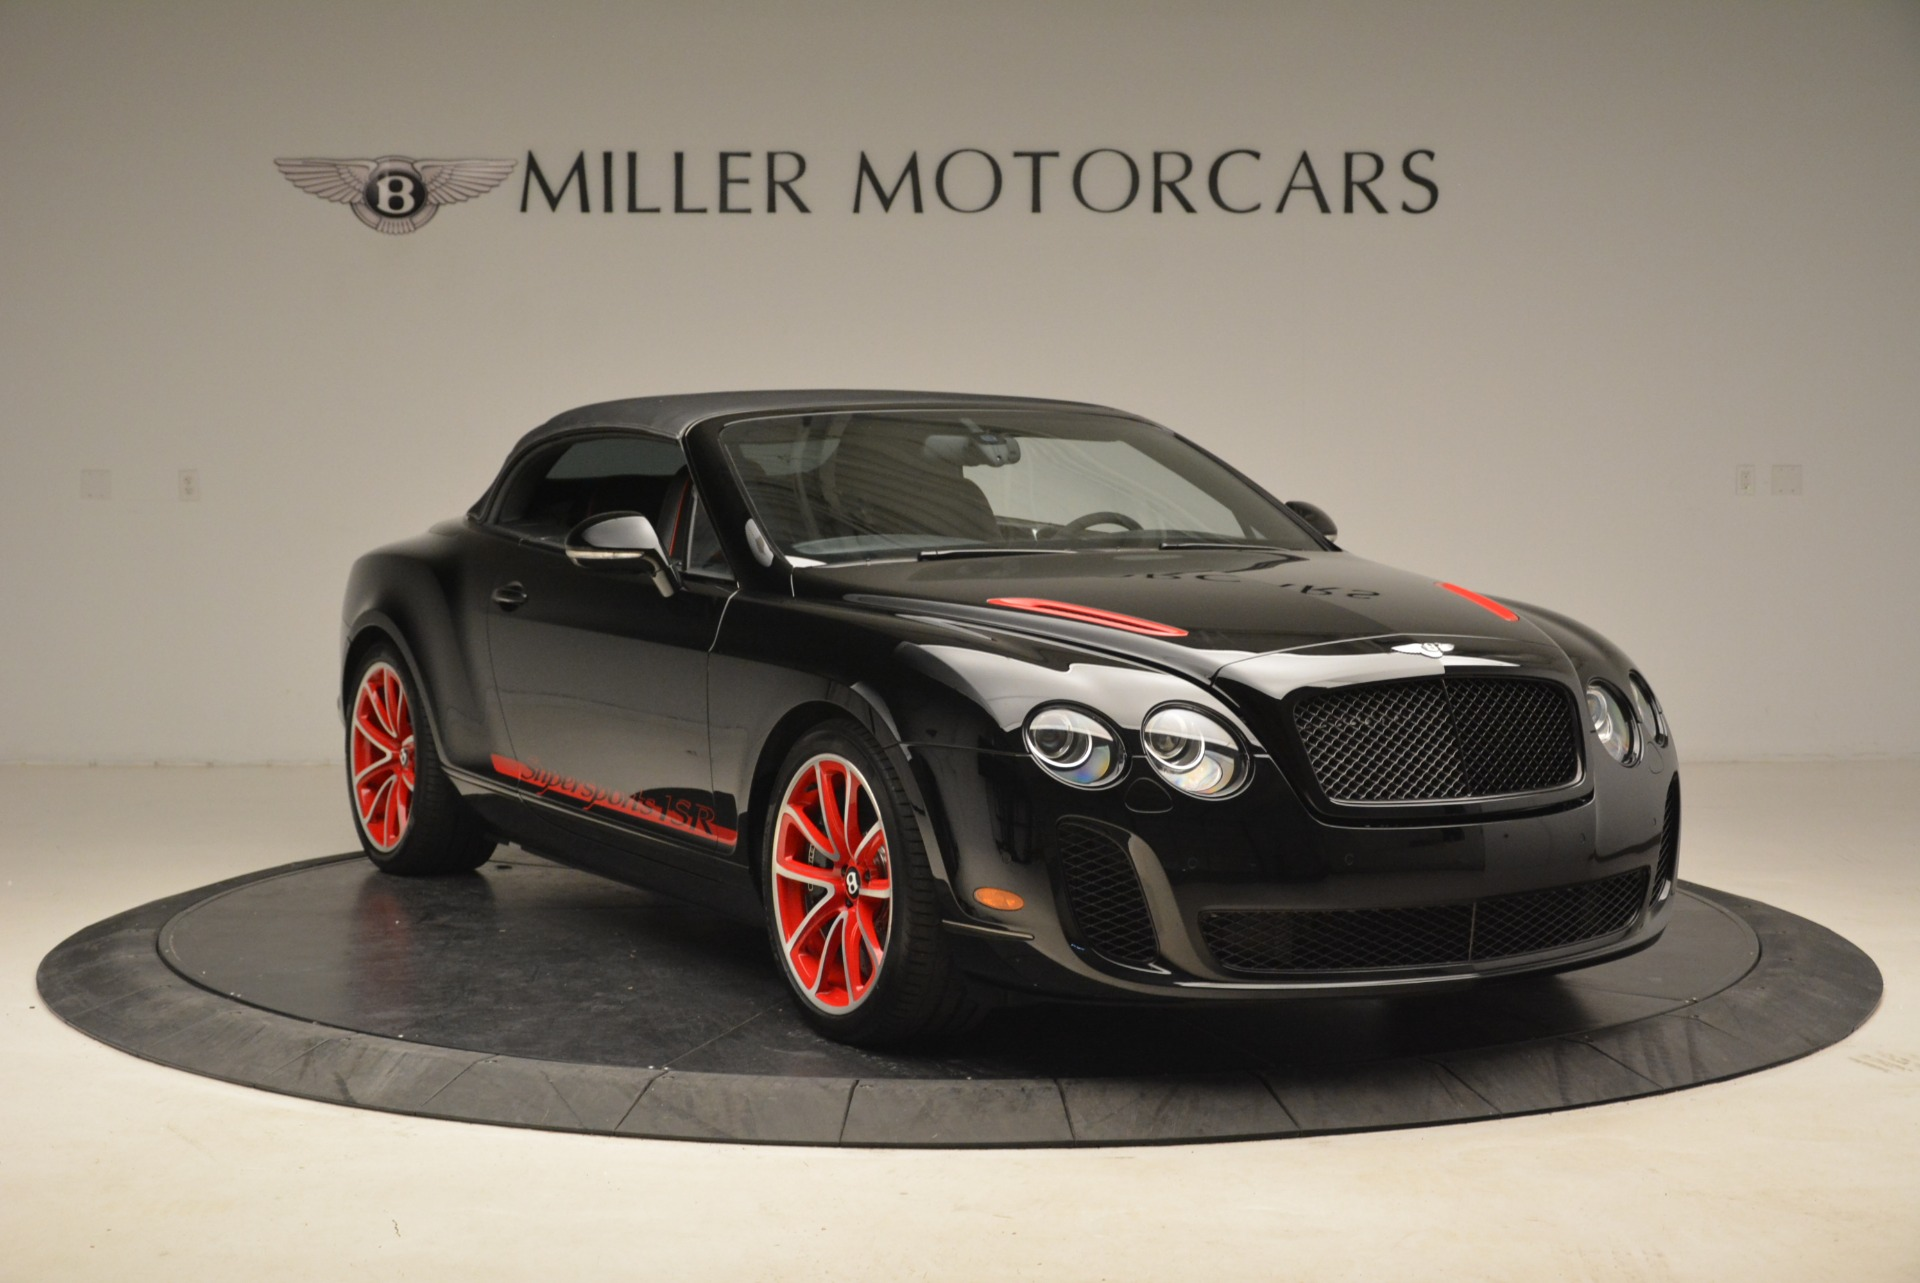 Used 2013 Bentley Continental GT Supersports Convertible ISR For Sale In Westport, CT 2151_p24